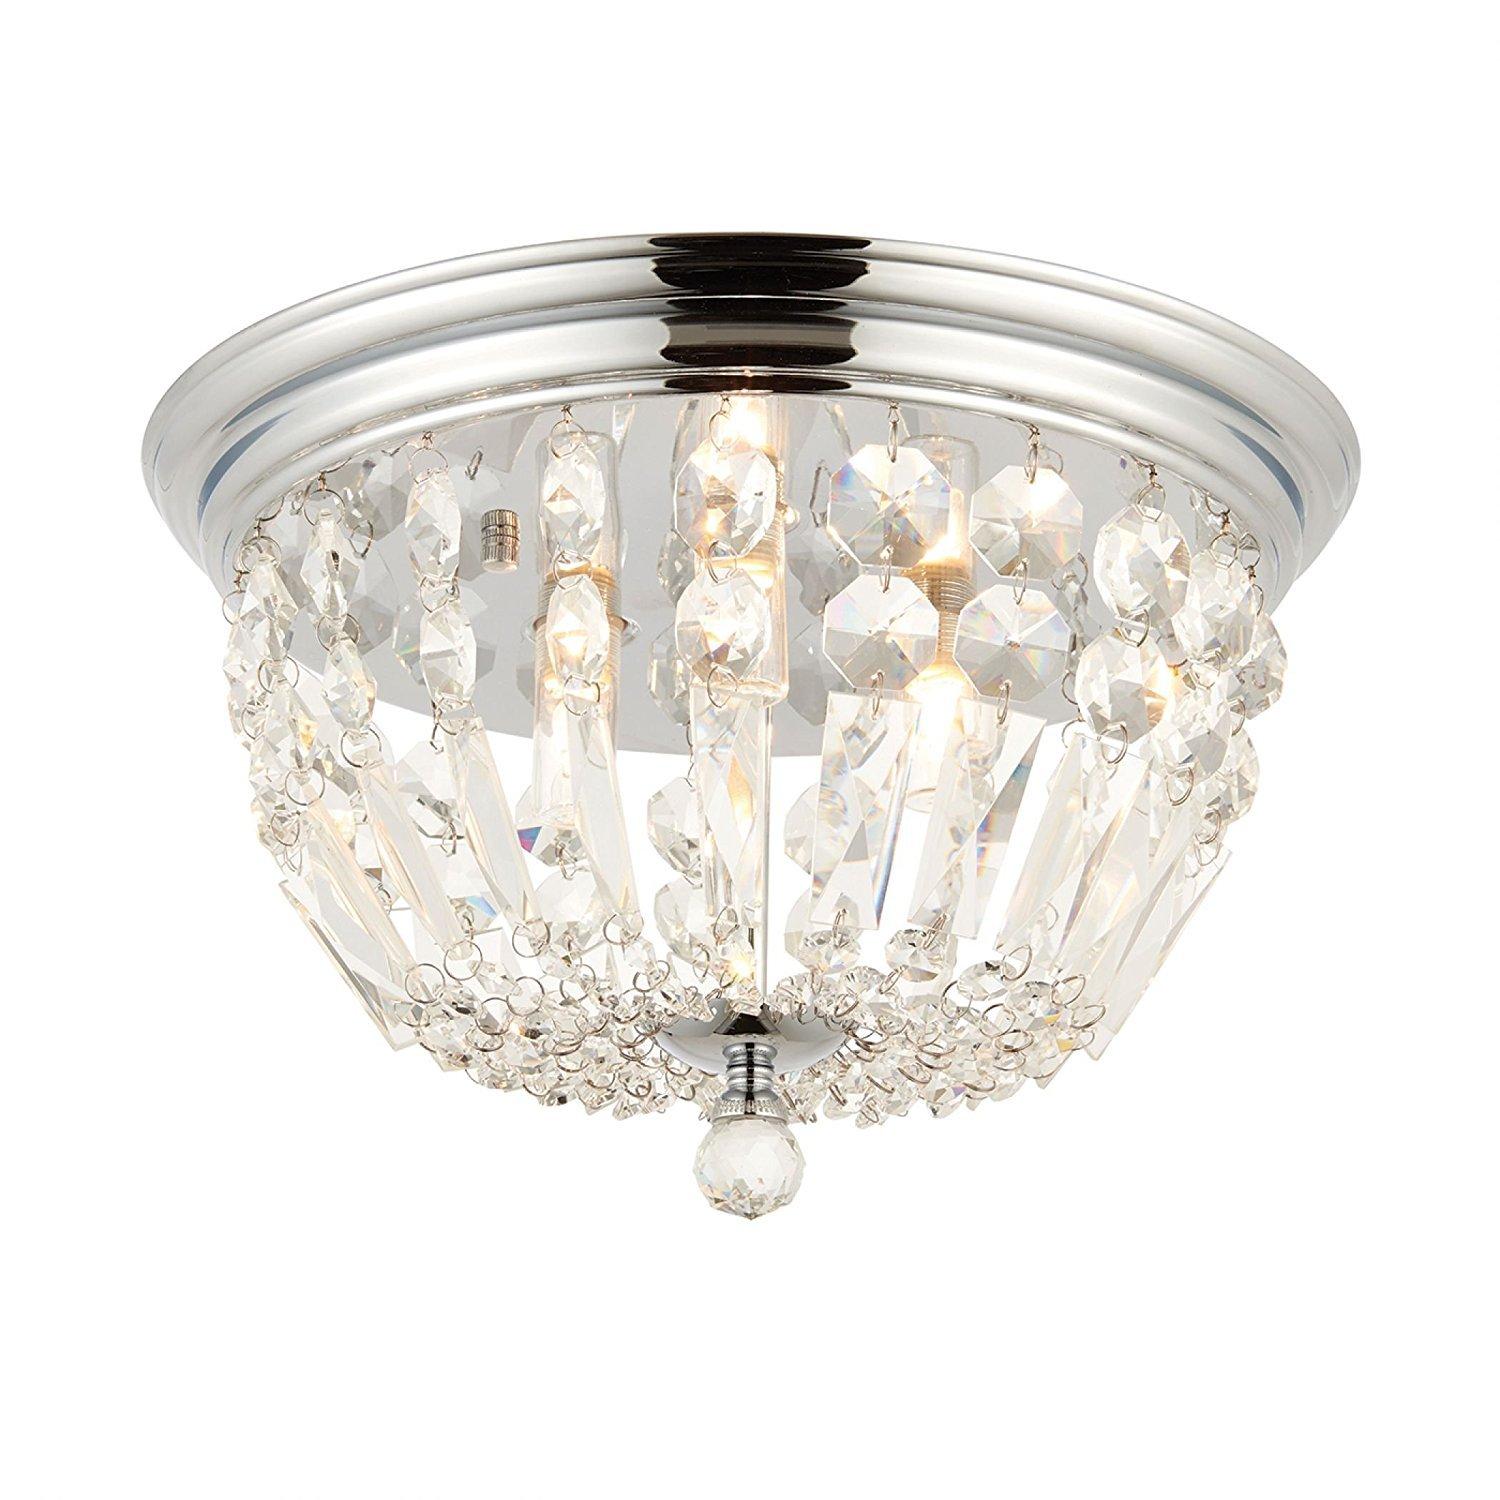 Endon Thorpe 68814 Modern 3 Way Crystal Bathroom Flush Light Fitting for Ceilings - IP44 Rated, For Bathrooms, Kitchens, Hallways and Living room, LED Compatible. Endon Lighting